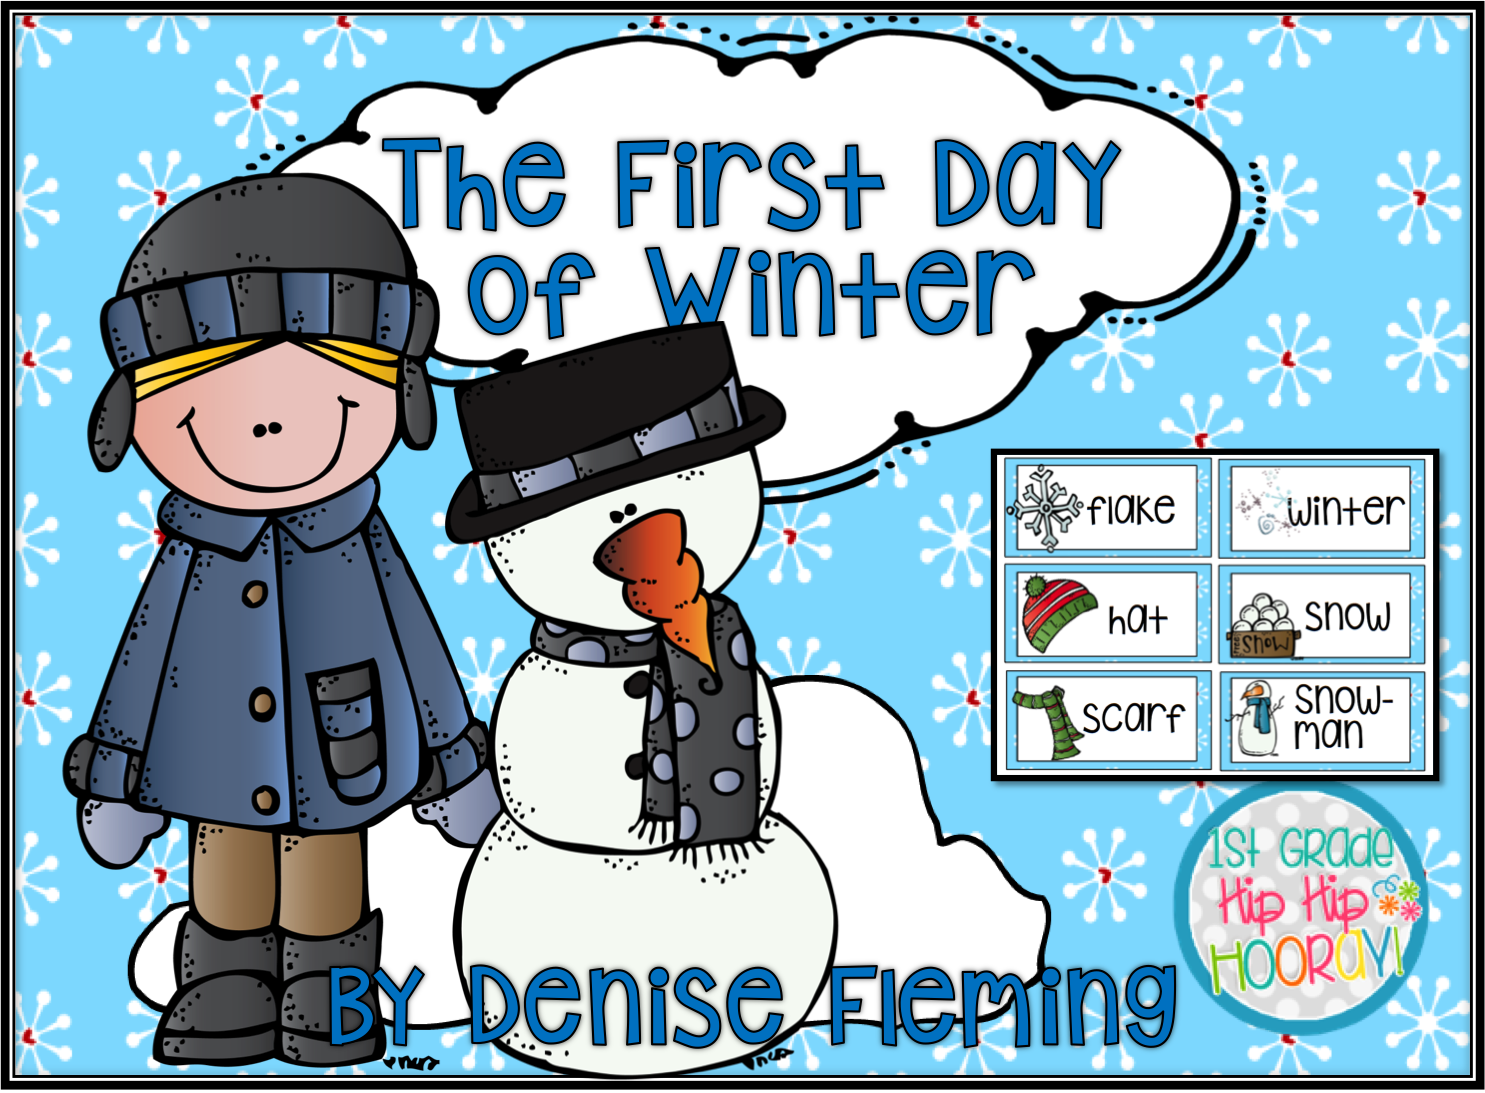 1st Grade Hip Hip Hooray!: The First Day Of Winter